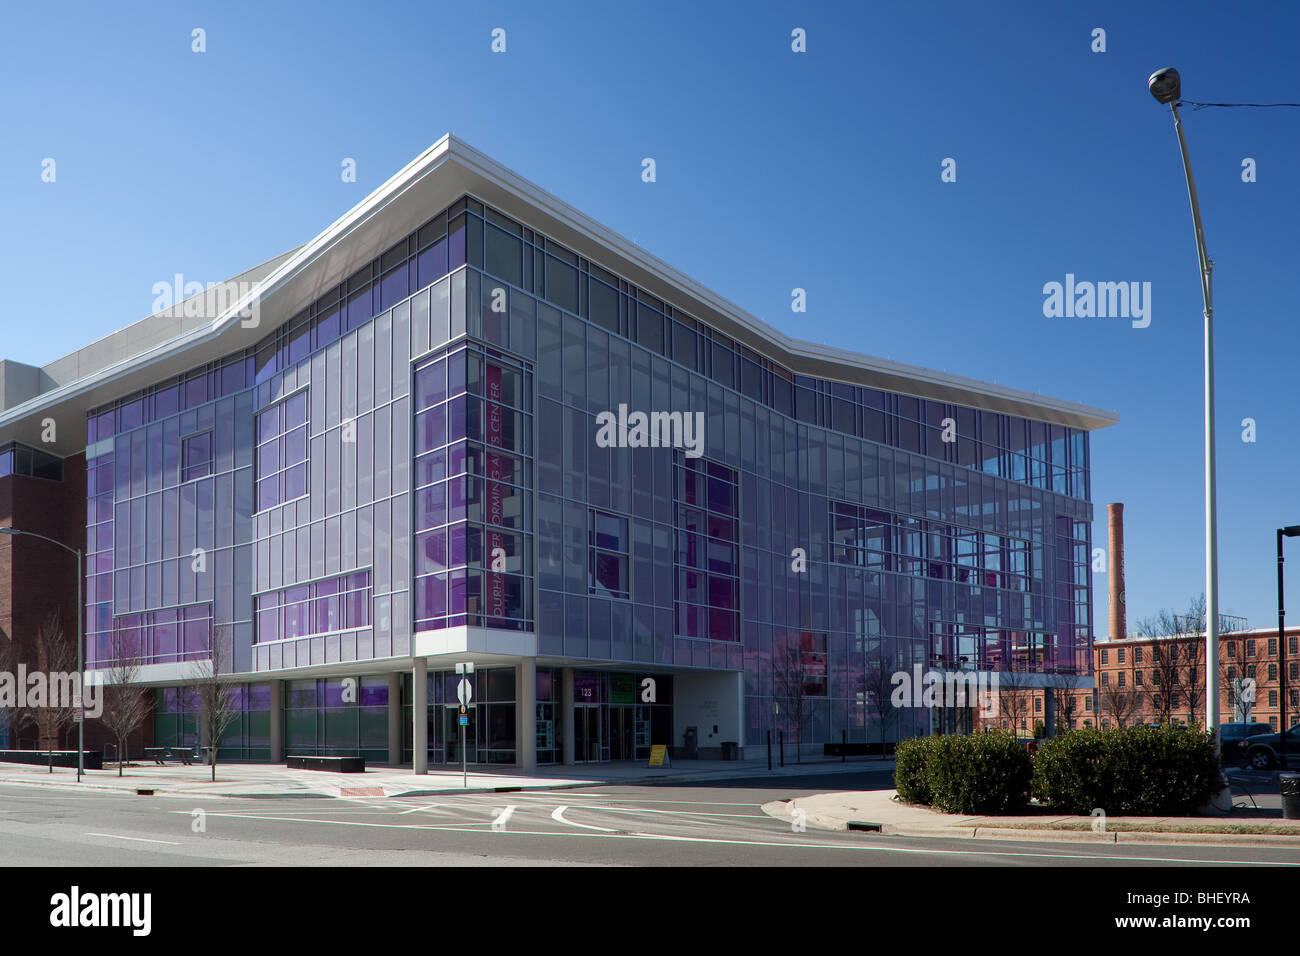 The Durham Performing Arts Center in downtown Durham, North Carolina. - Stock Image